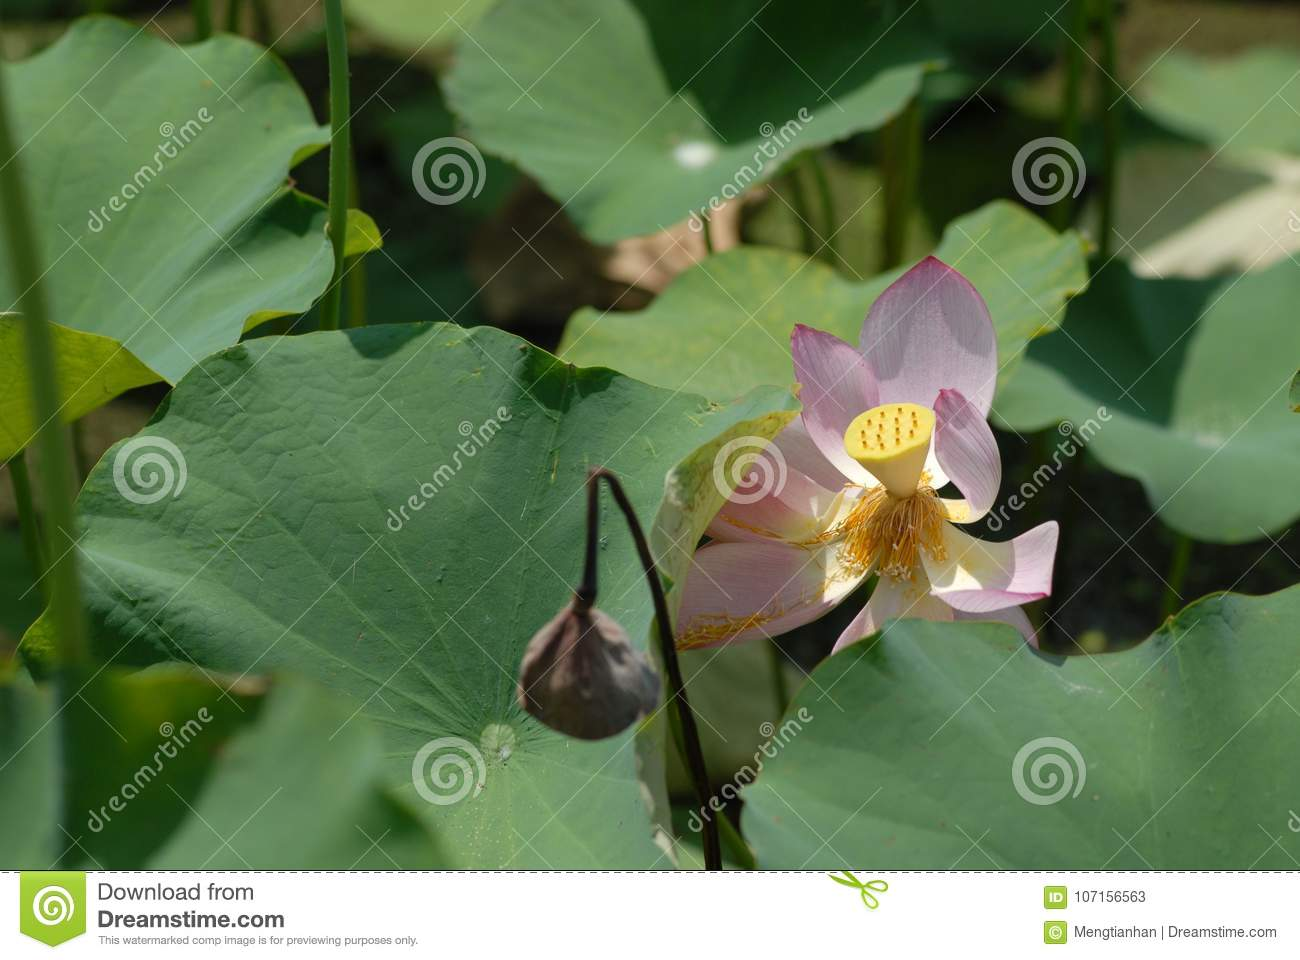 Jiangxi guangchang white lotus lotus flower stock image image of genus proteales nelumbonaceae known as two species of the genus also known as lotus water hibiscus and so on is a perennial aquatic herb flowers izmirmasajfo